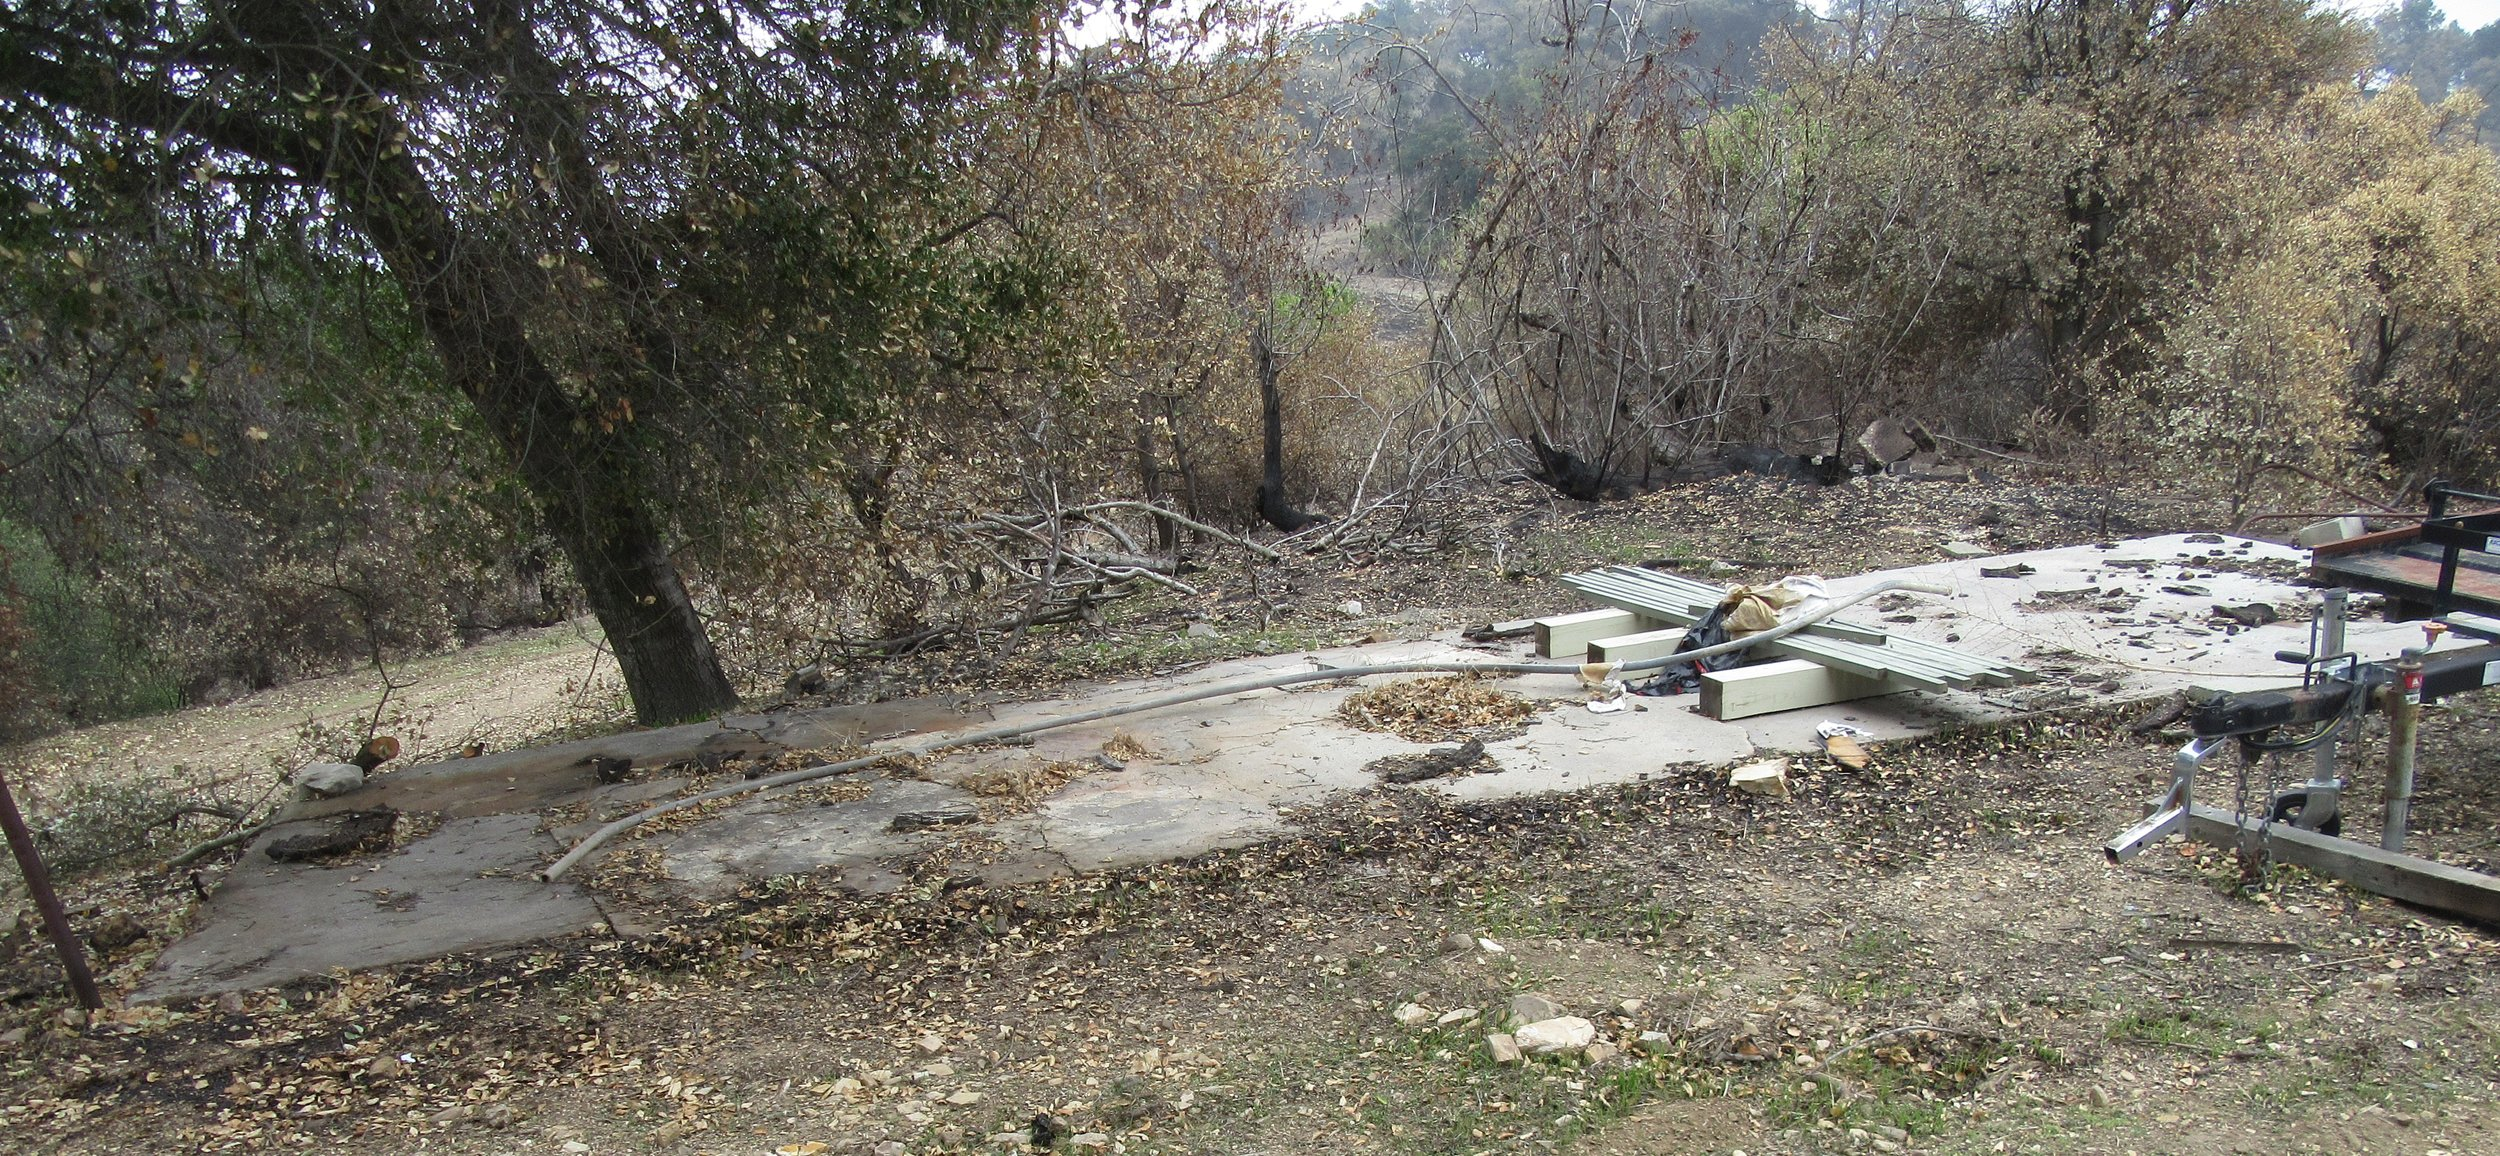 OLD CONCRETE FOUNDATION of a work shed at Meher Mount that burned to the ground in the 1985 New Life Fire. Volunteers cleared the area so this pad could be used to store milled wood from Baba's Tree. (Photo: Sam Ervin, January 19, 2018)